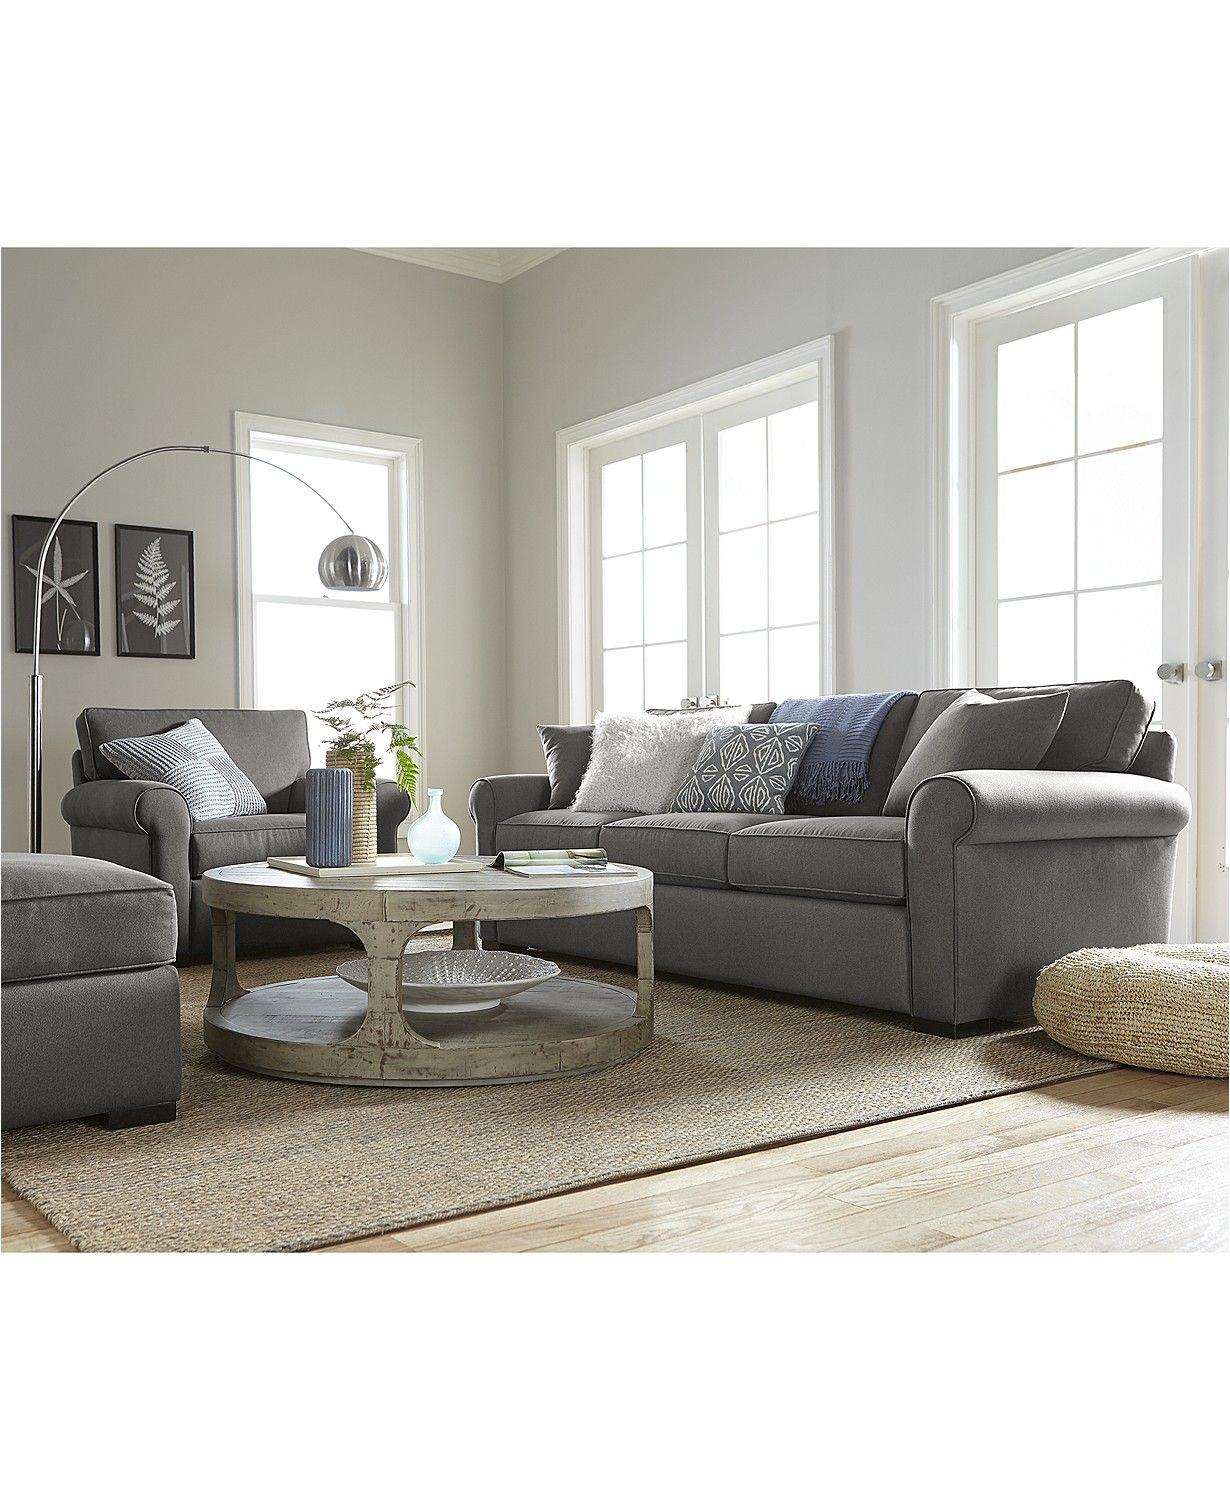 Magnified Main Image Living Room Sets Furniture Furniture Home